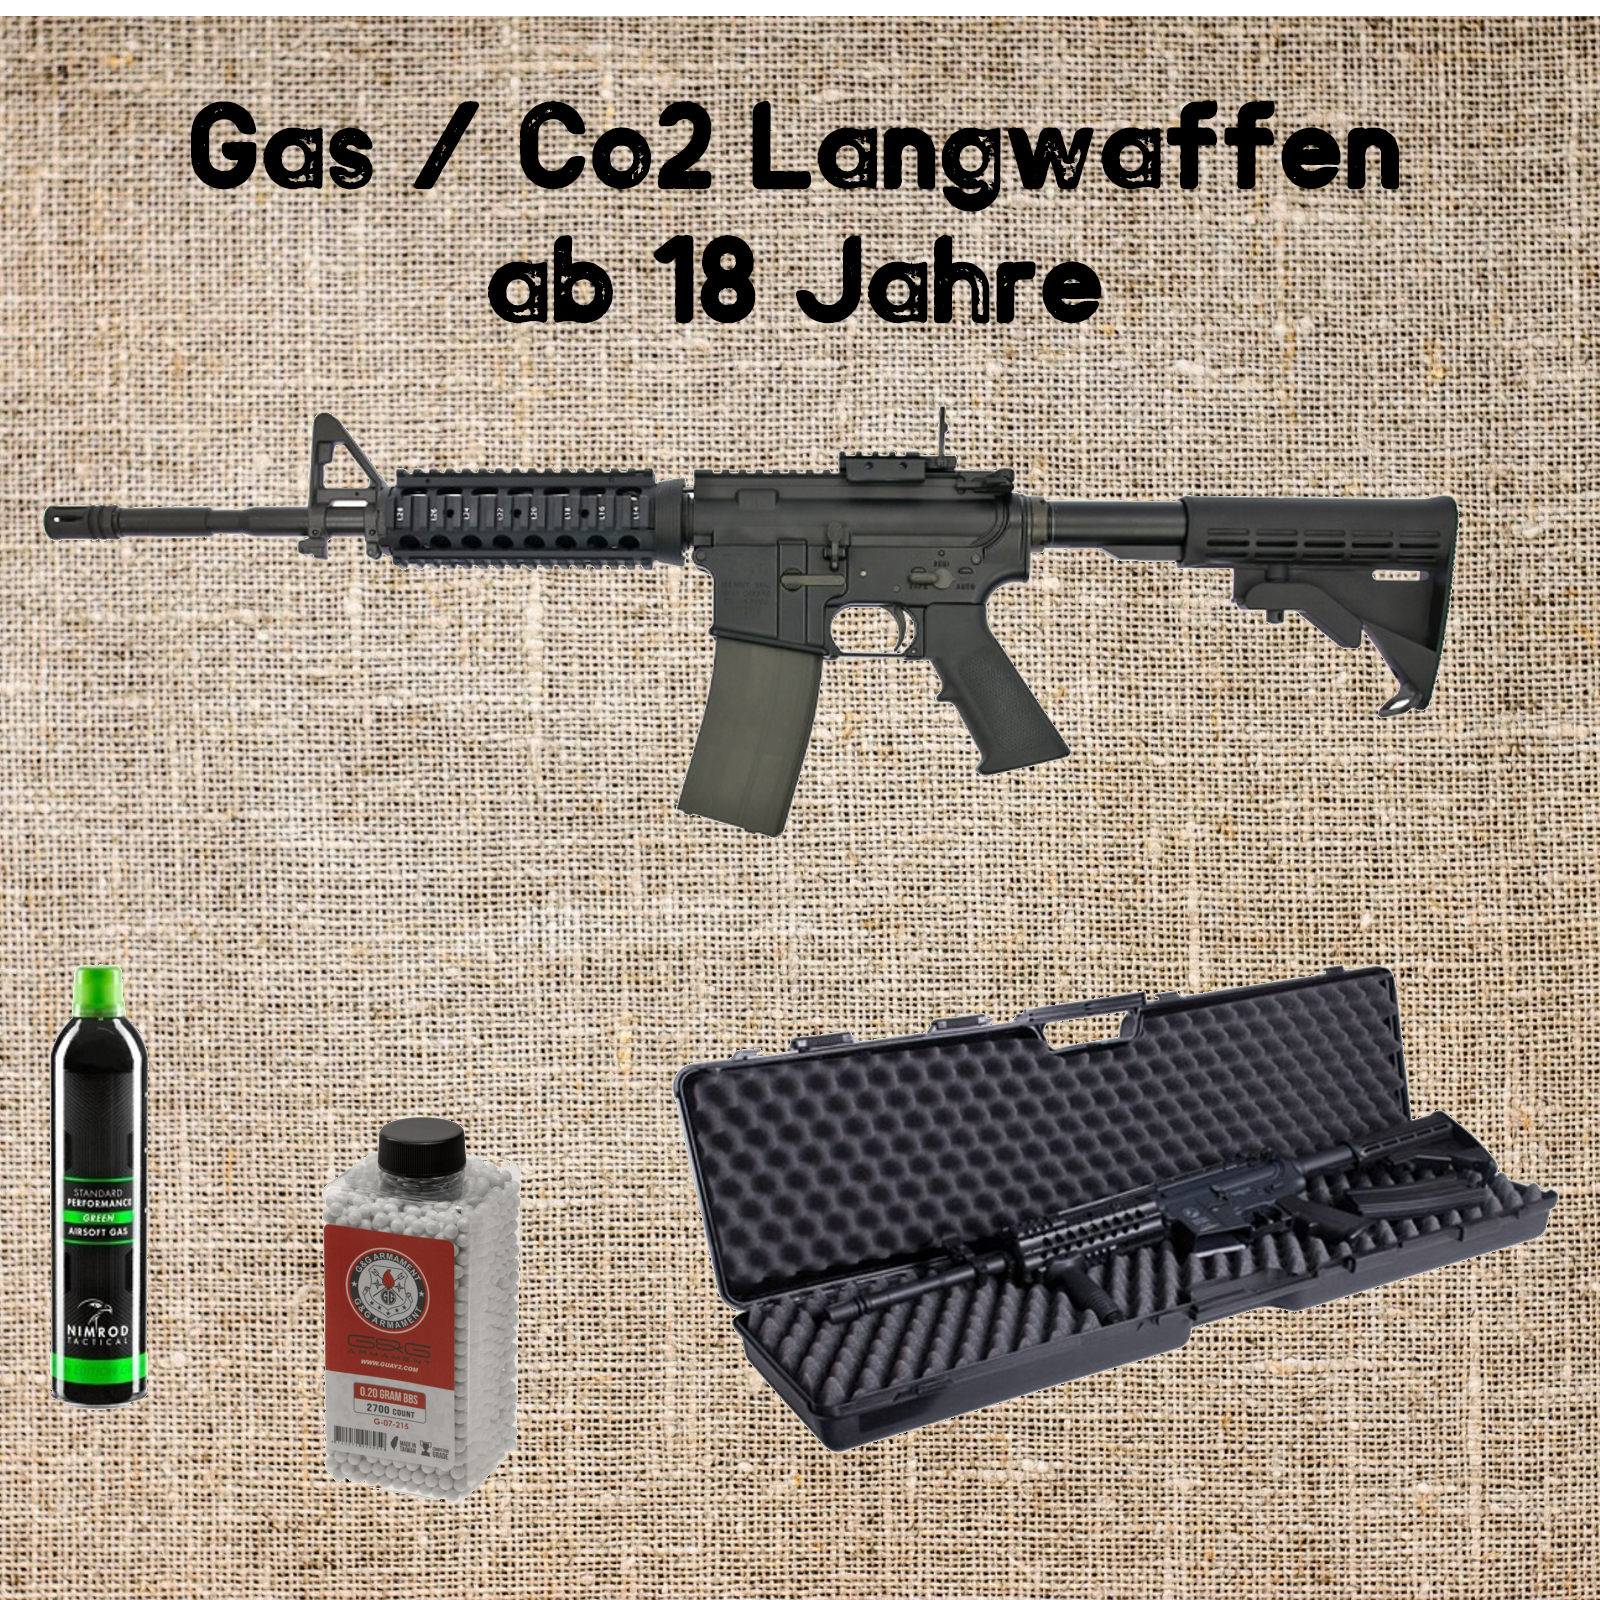 Sets Gas / Co2 Langwaffen